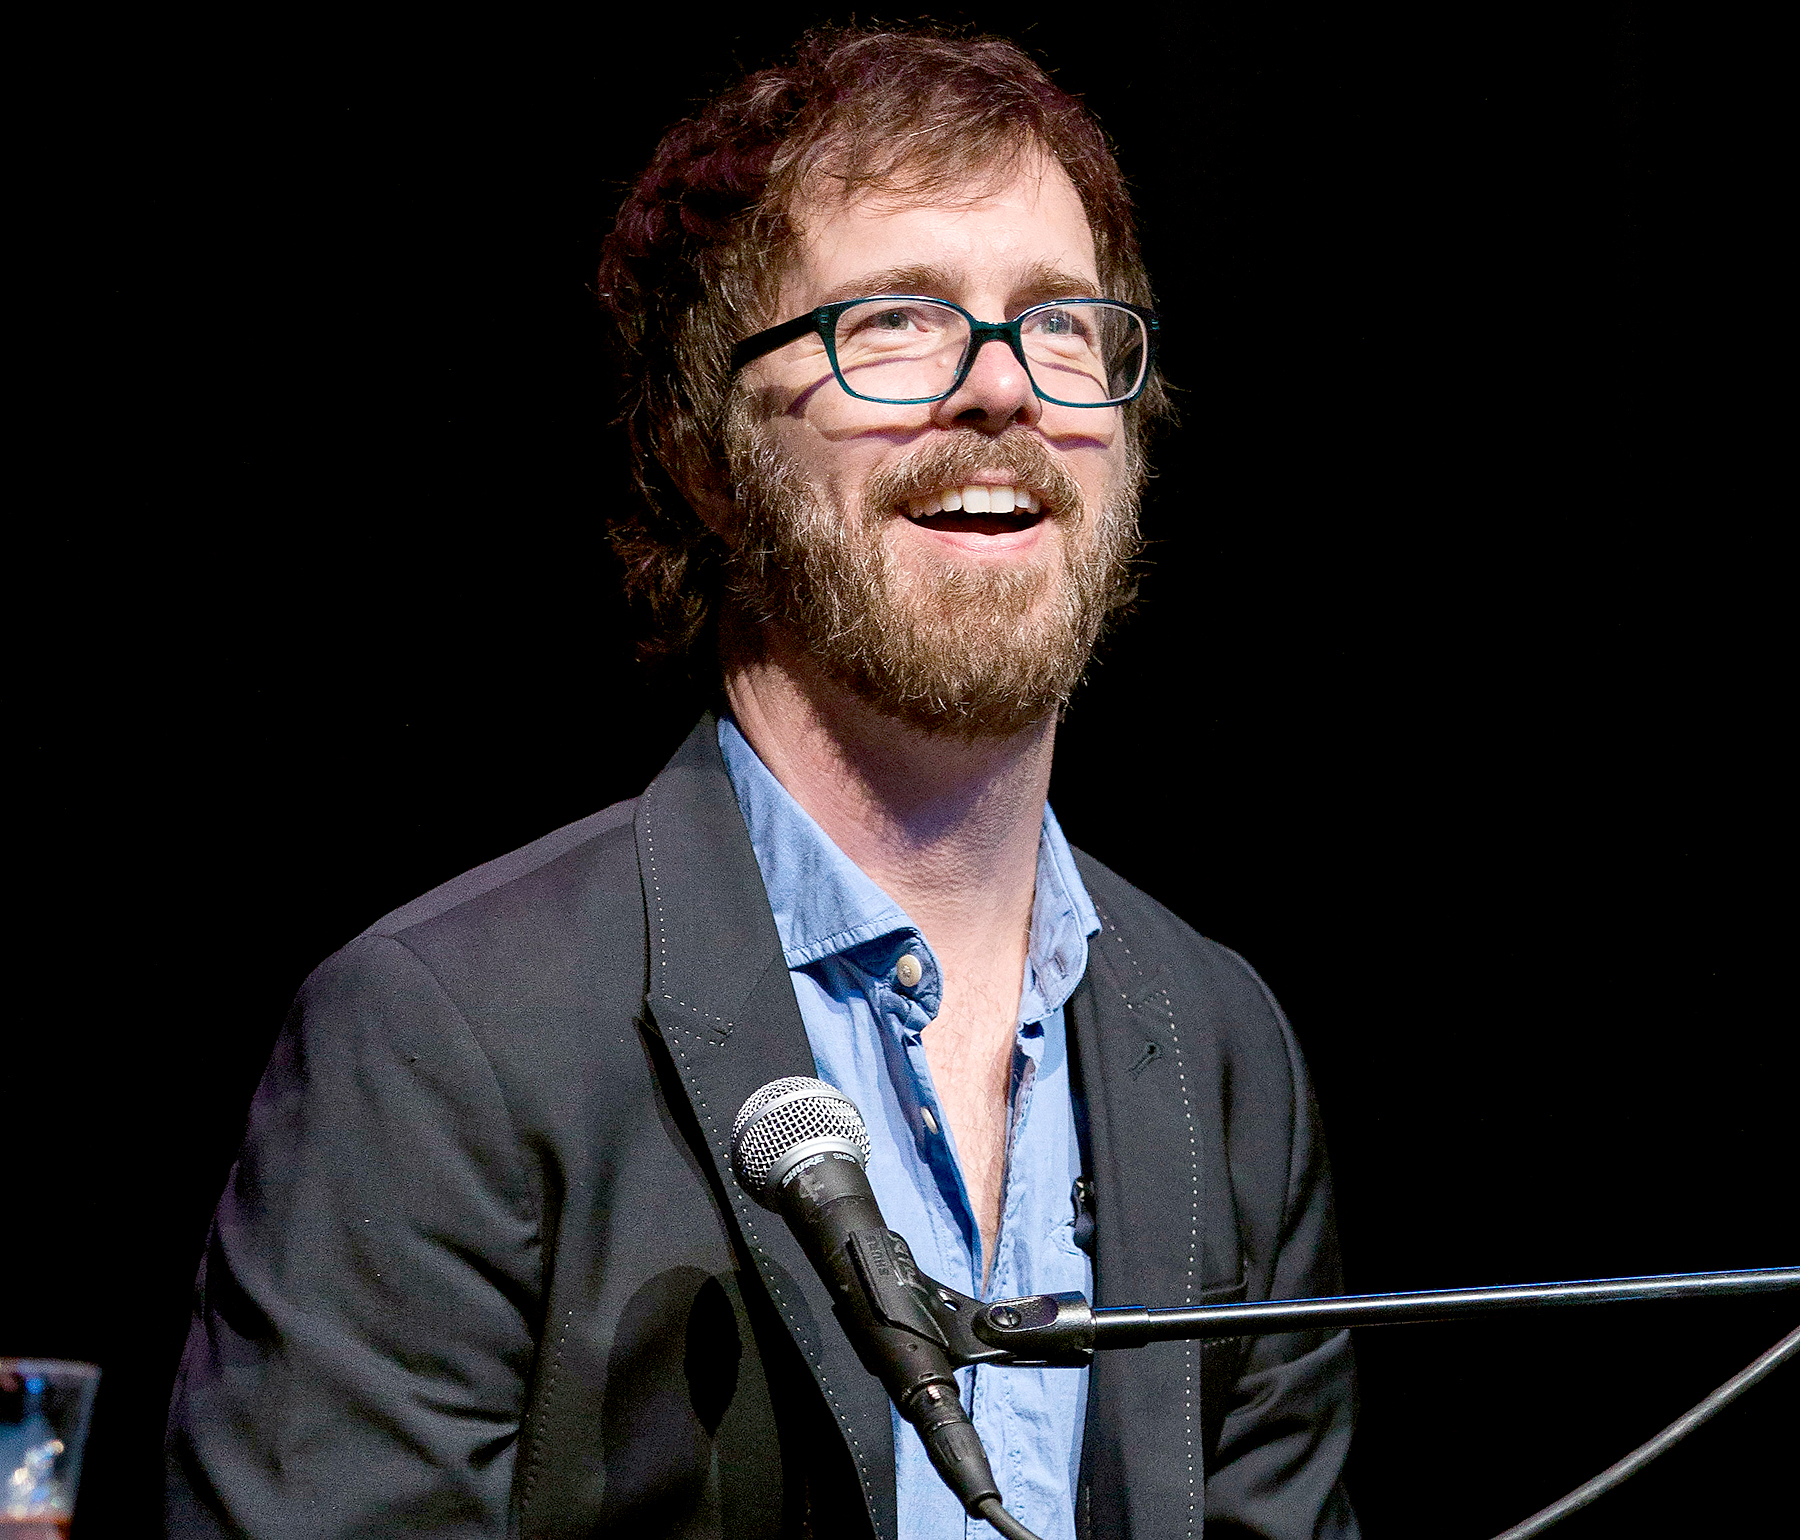 Ben Folds performs in support of his So There tour at The Fillmore on May 12, 2016 in Detroit, Michigan.